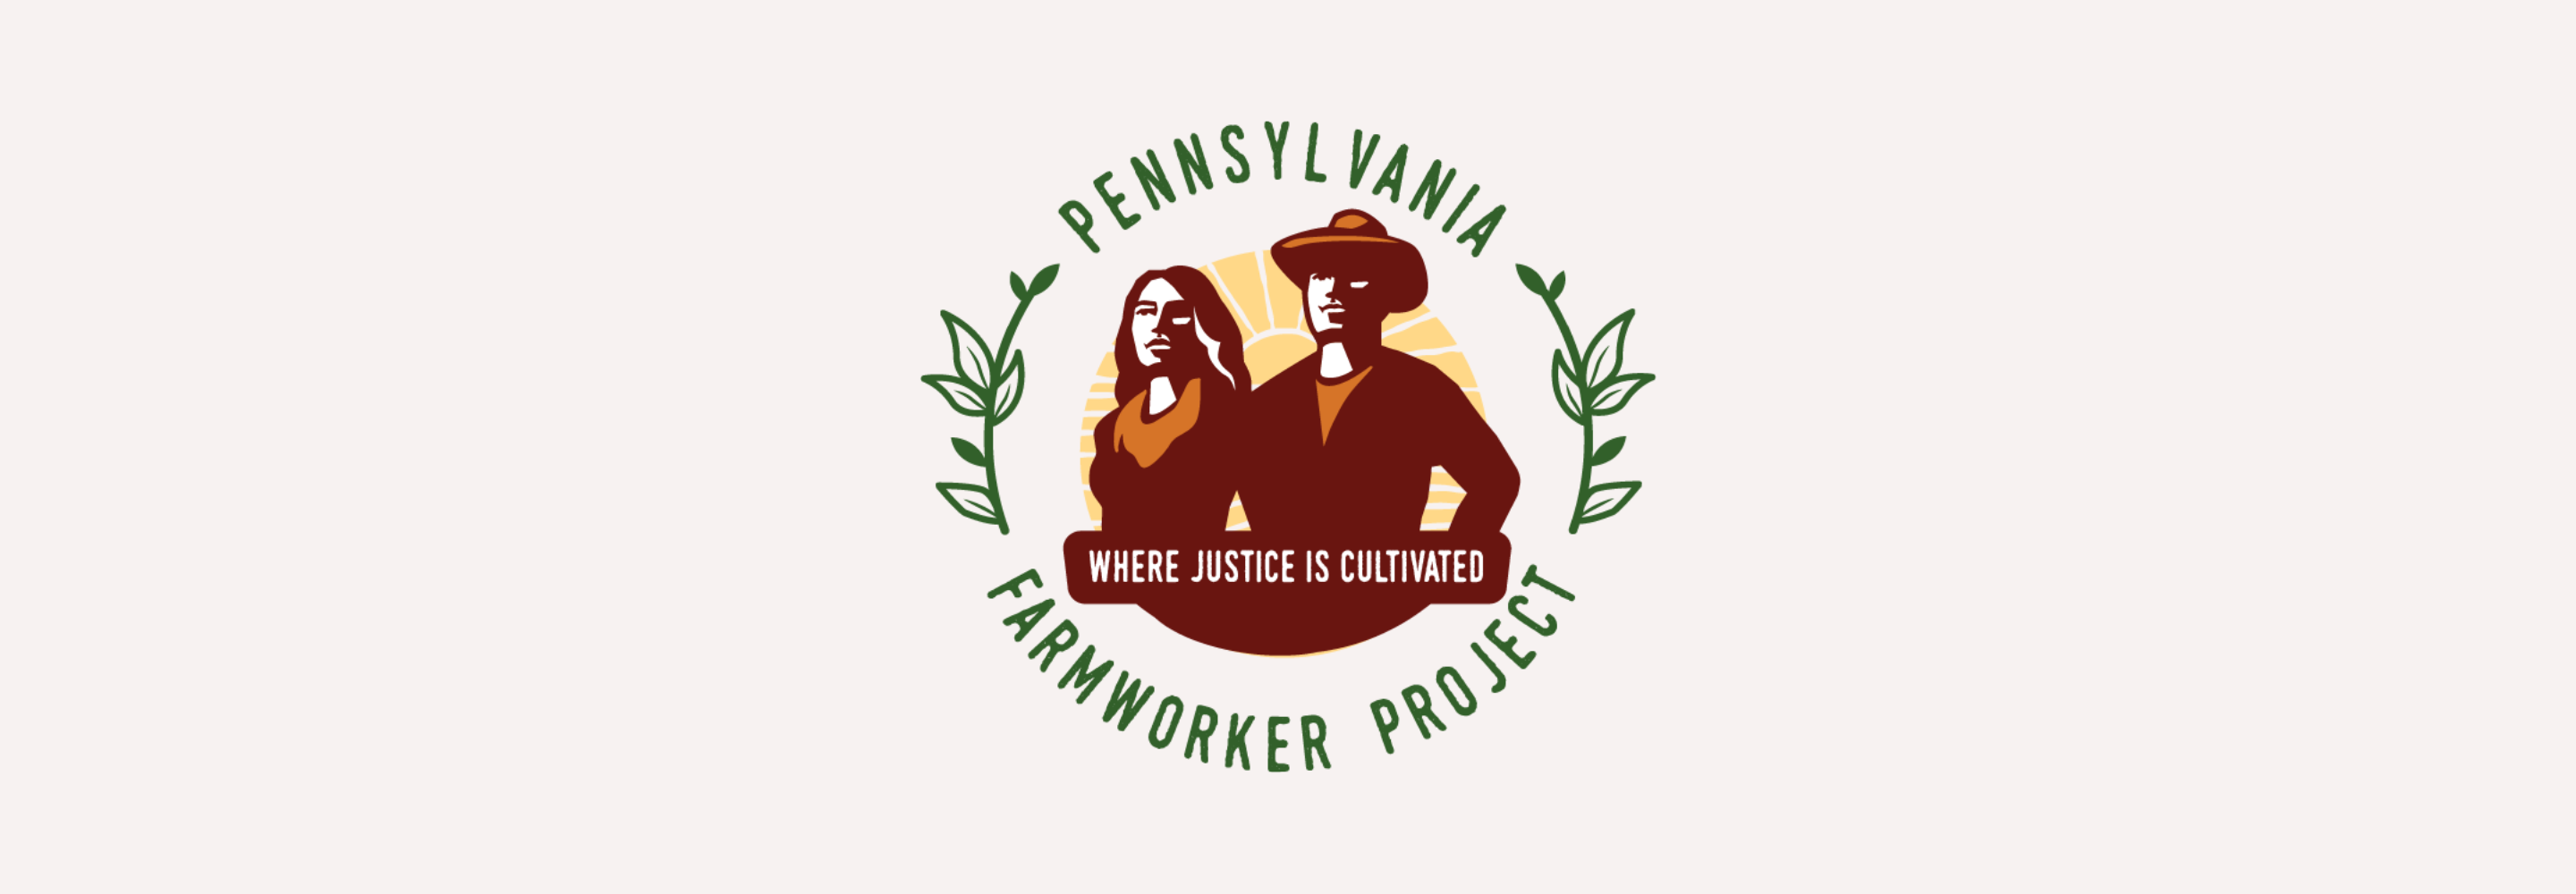 "PFP logo: Two figures in red standing proudly. A banner reads ""Where Justice is Cultivated"""